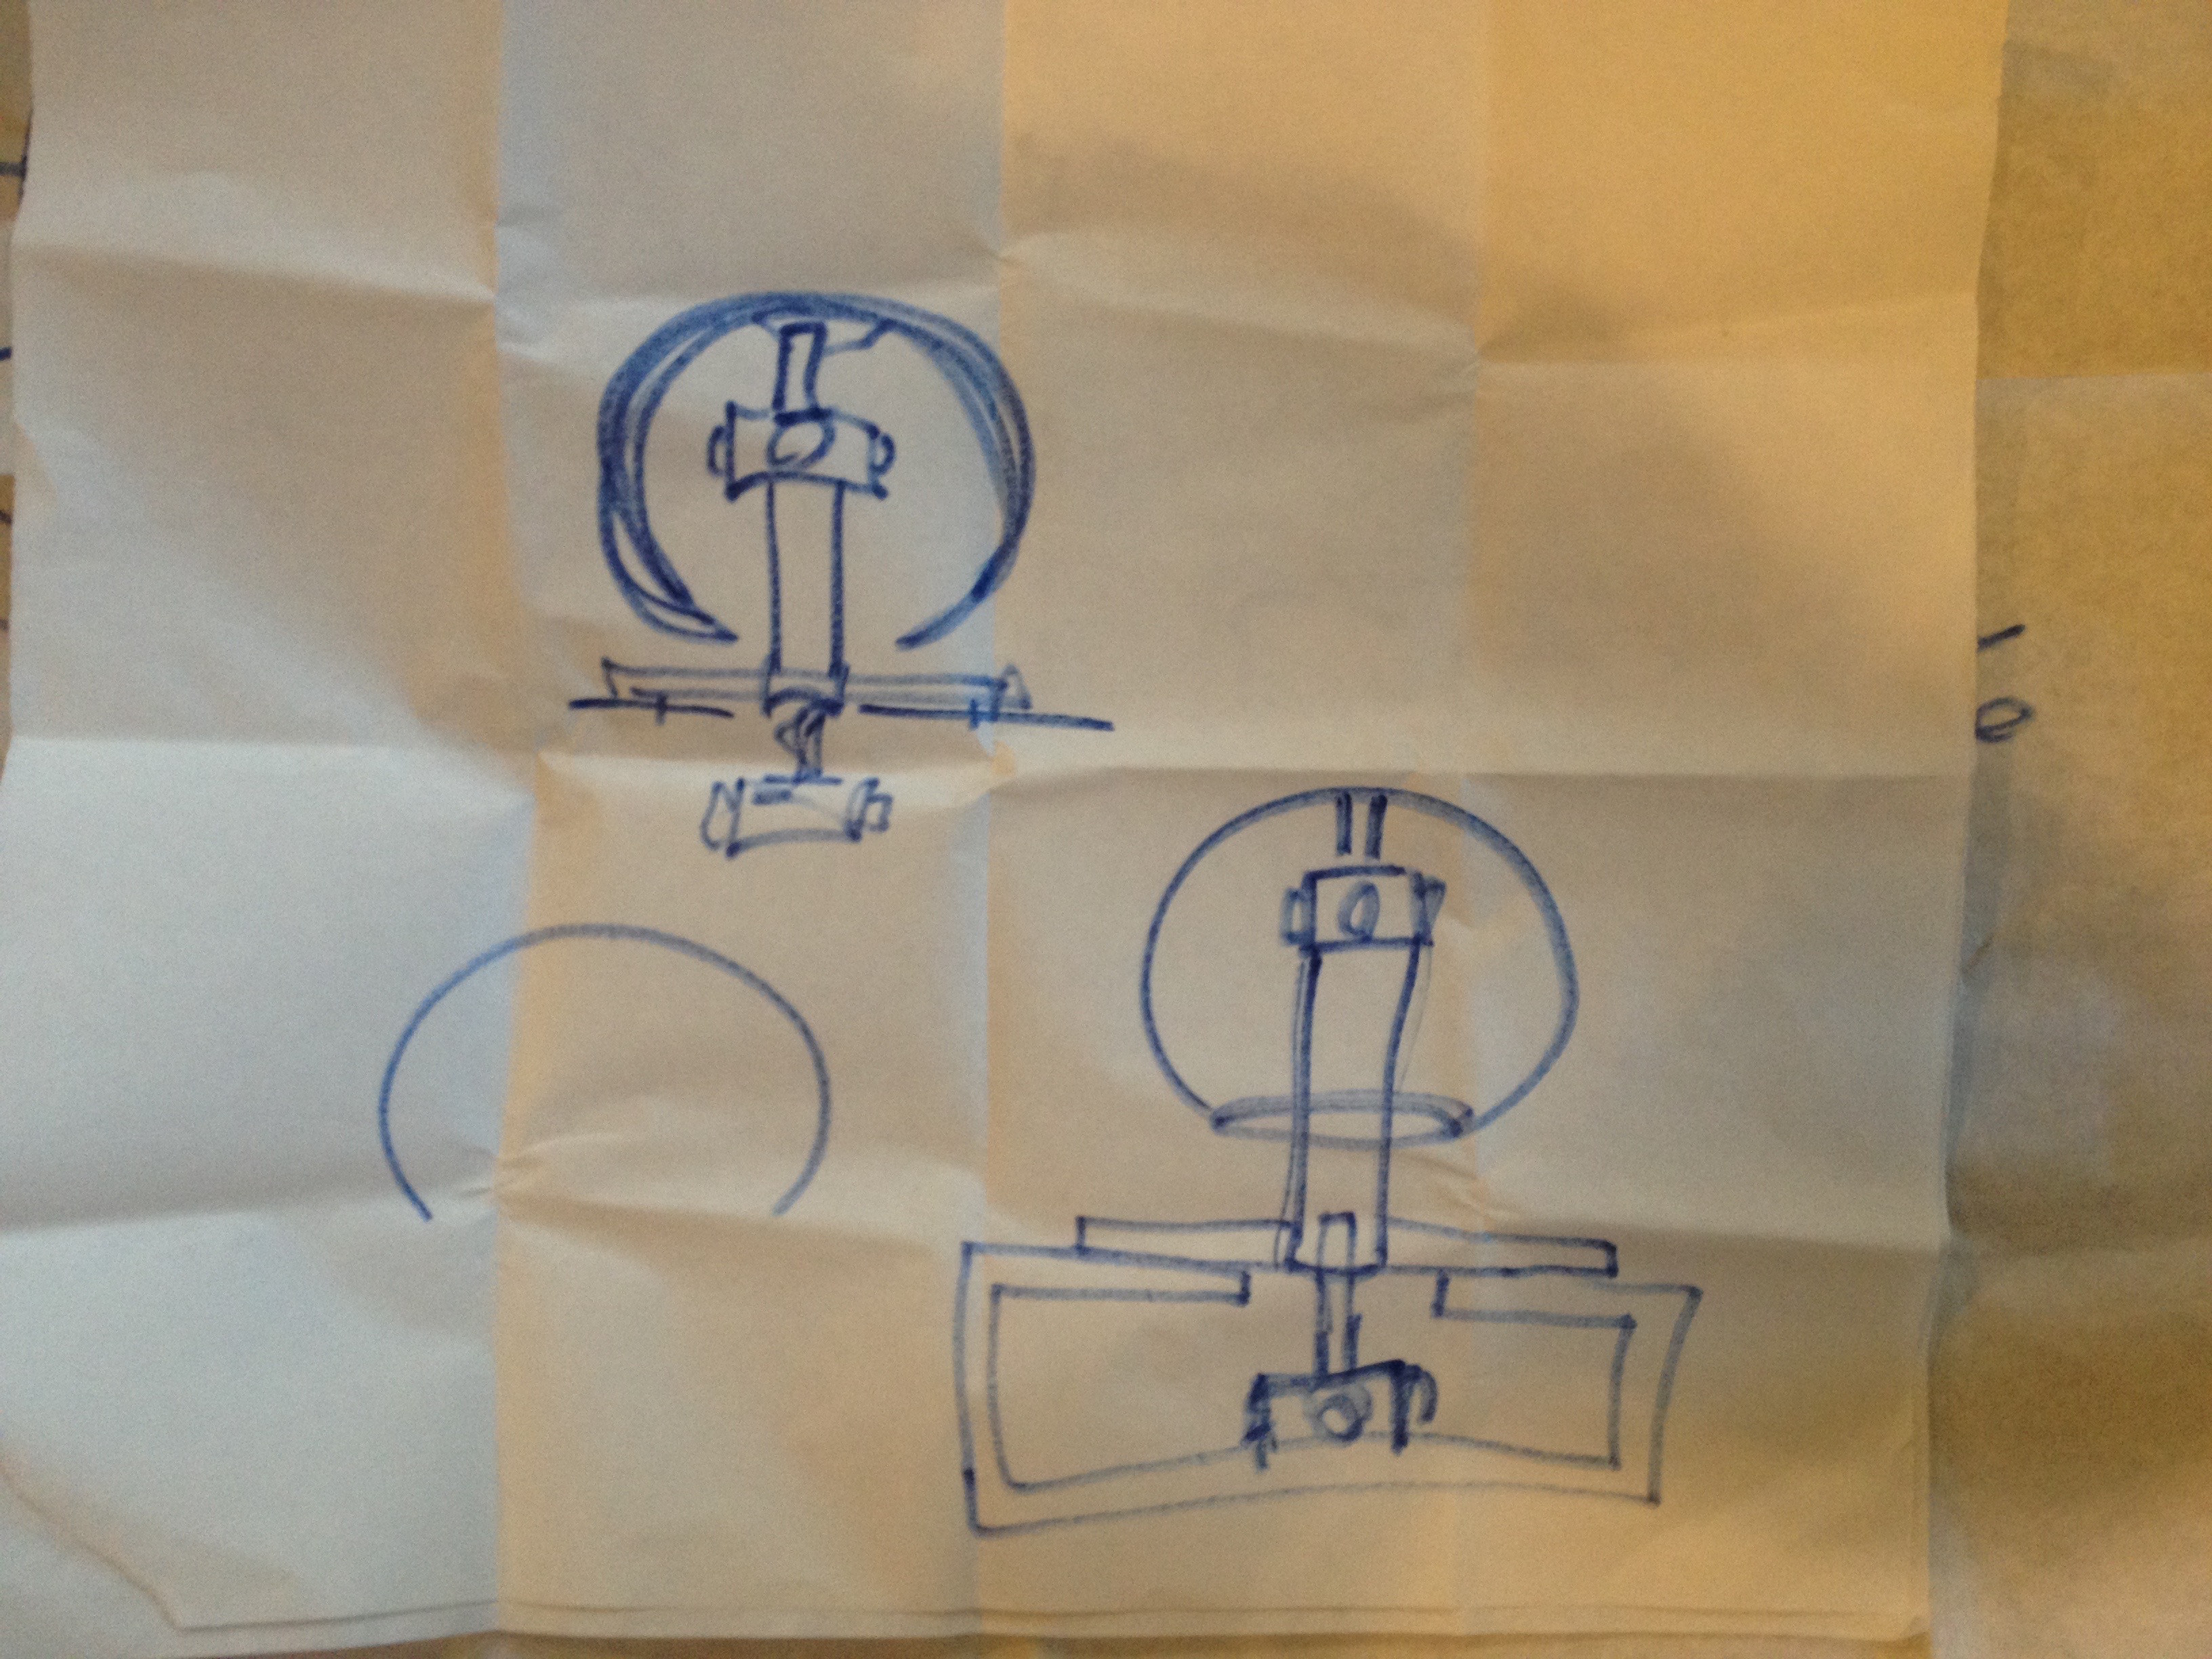 Ipc Quest Kennelly 2 Axis Joystick Wiring Diagrams One Controller In The Top Of Sphere For Rotation Underneath Translation A Slide Potentiometer Shaft Up And Down